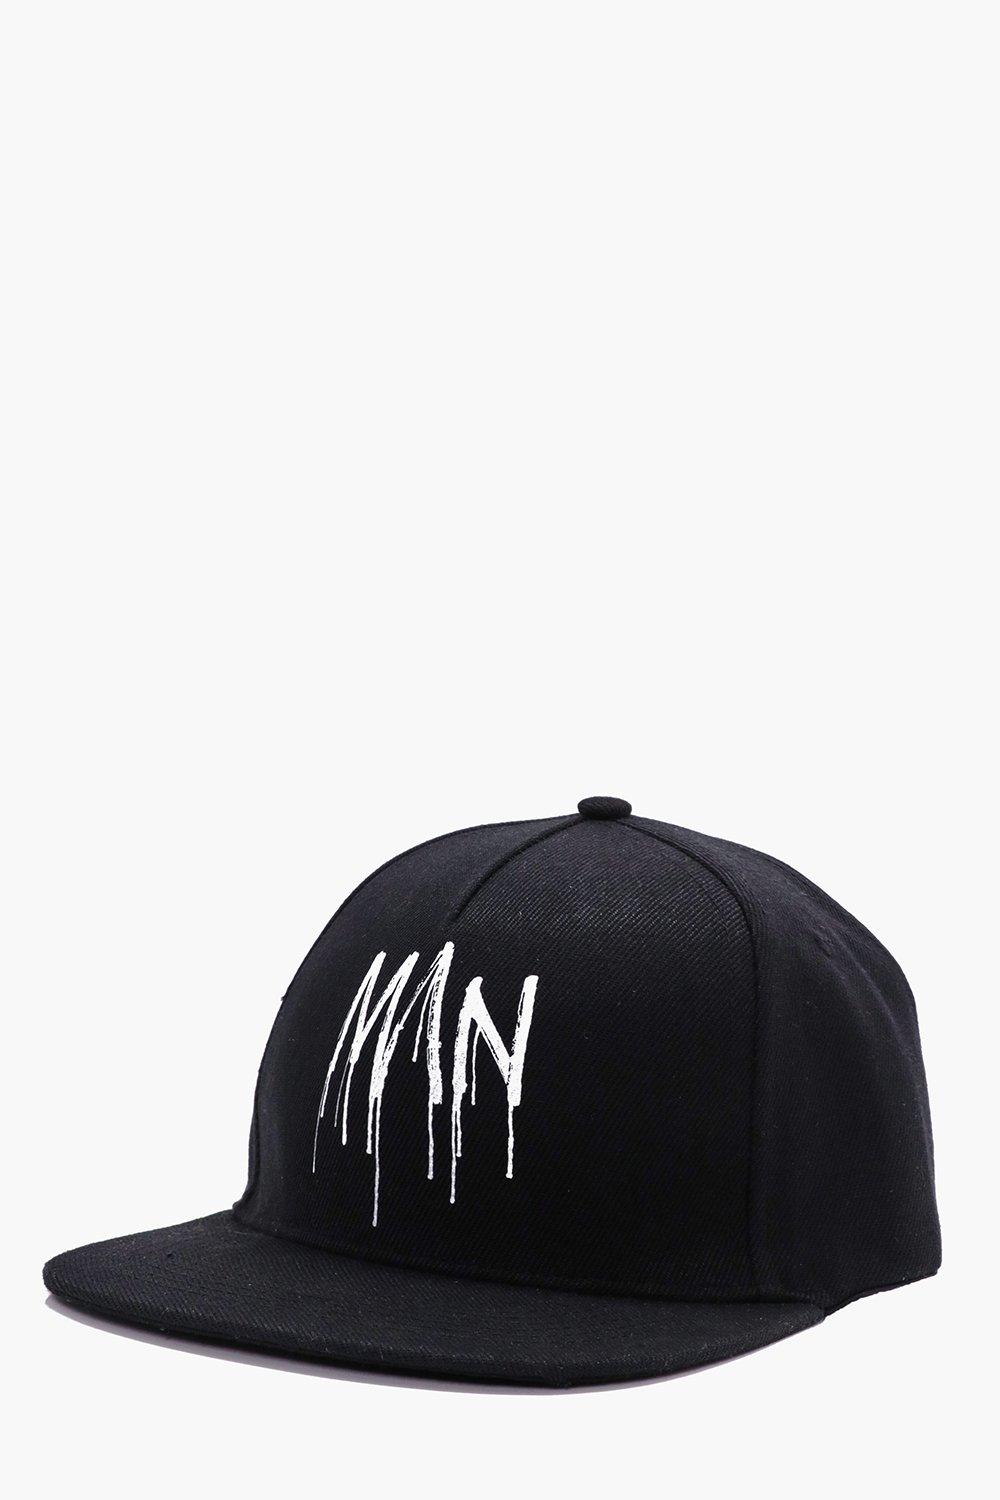 Graffiti Printed Snap Back - black - Man Graffiti